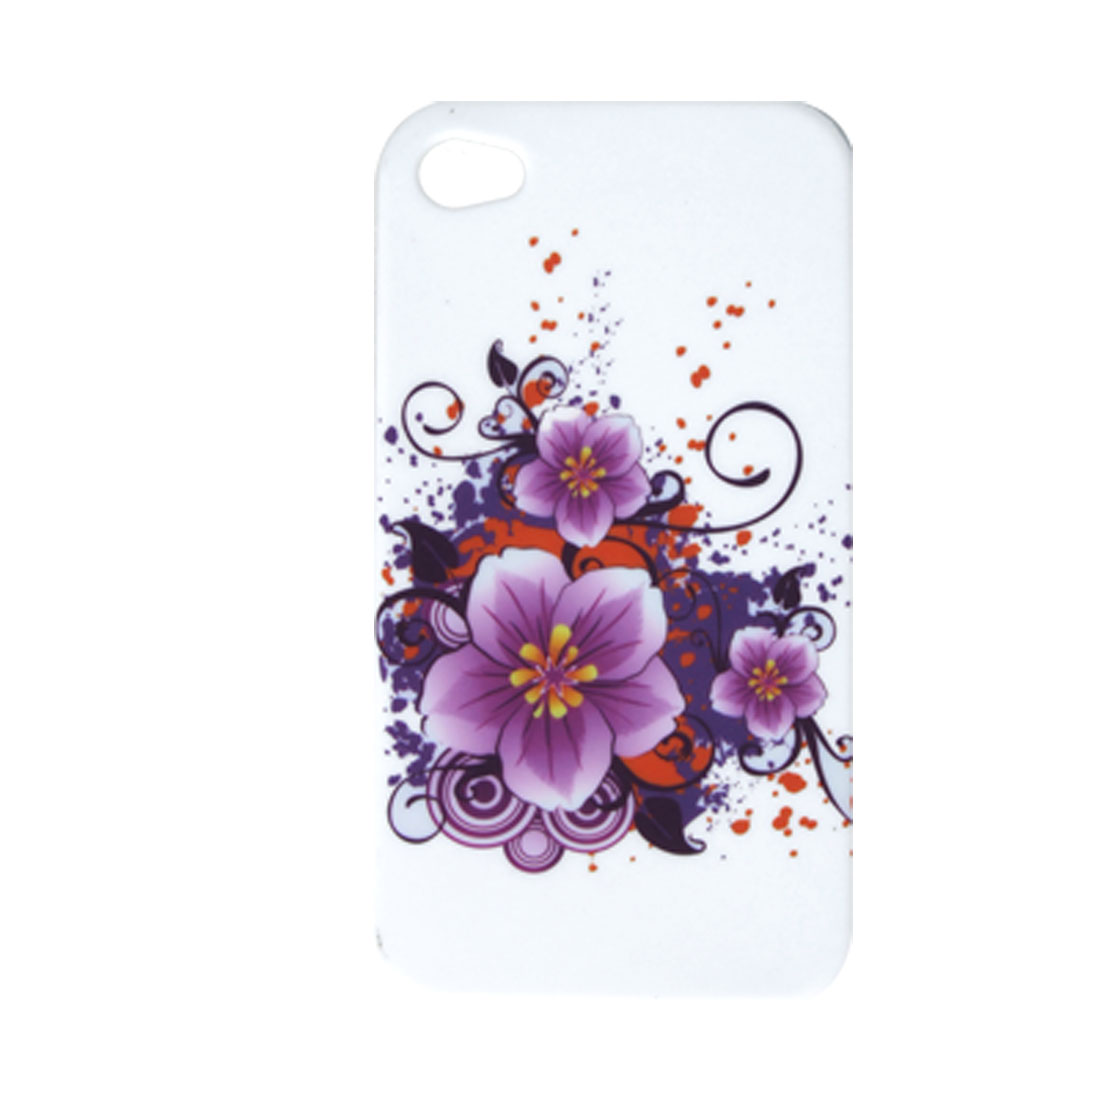 White Soft Plastic Back Case Flower Guard for iPhone 4 4G